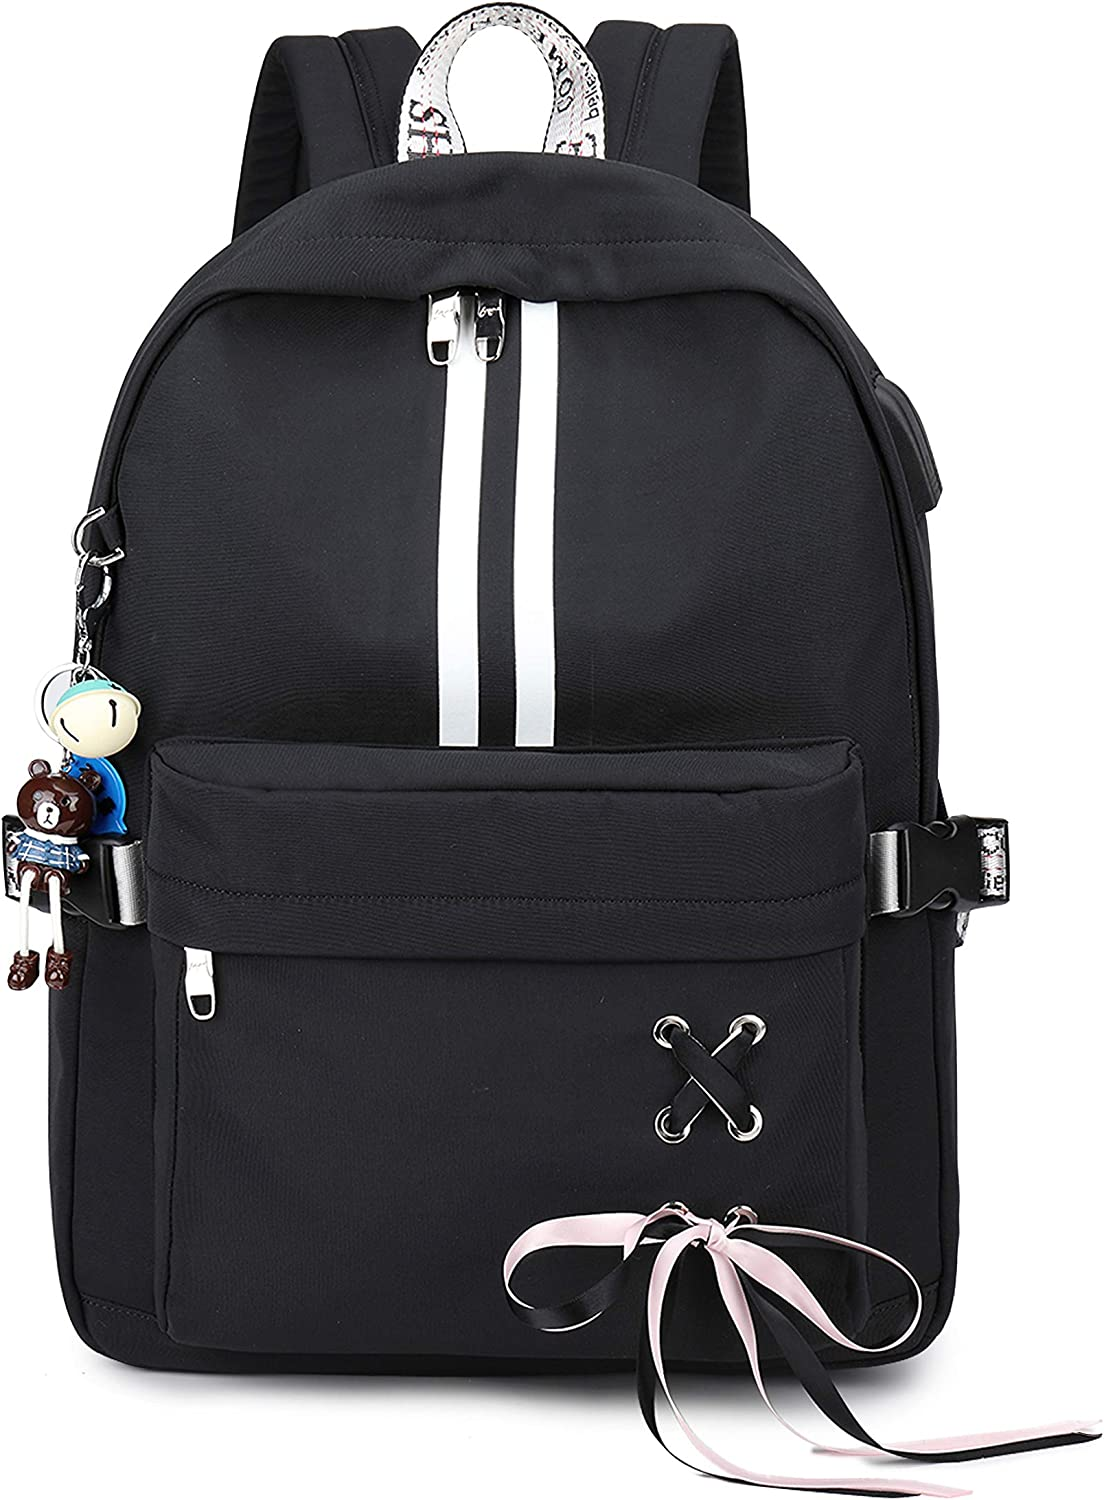 Backpacks for Girls School With Usb Charging Port 16 Inch Laptop Travel Daypack